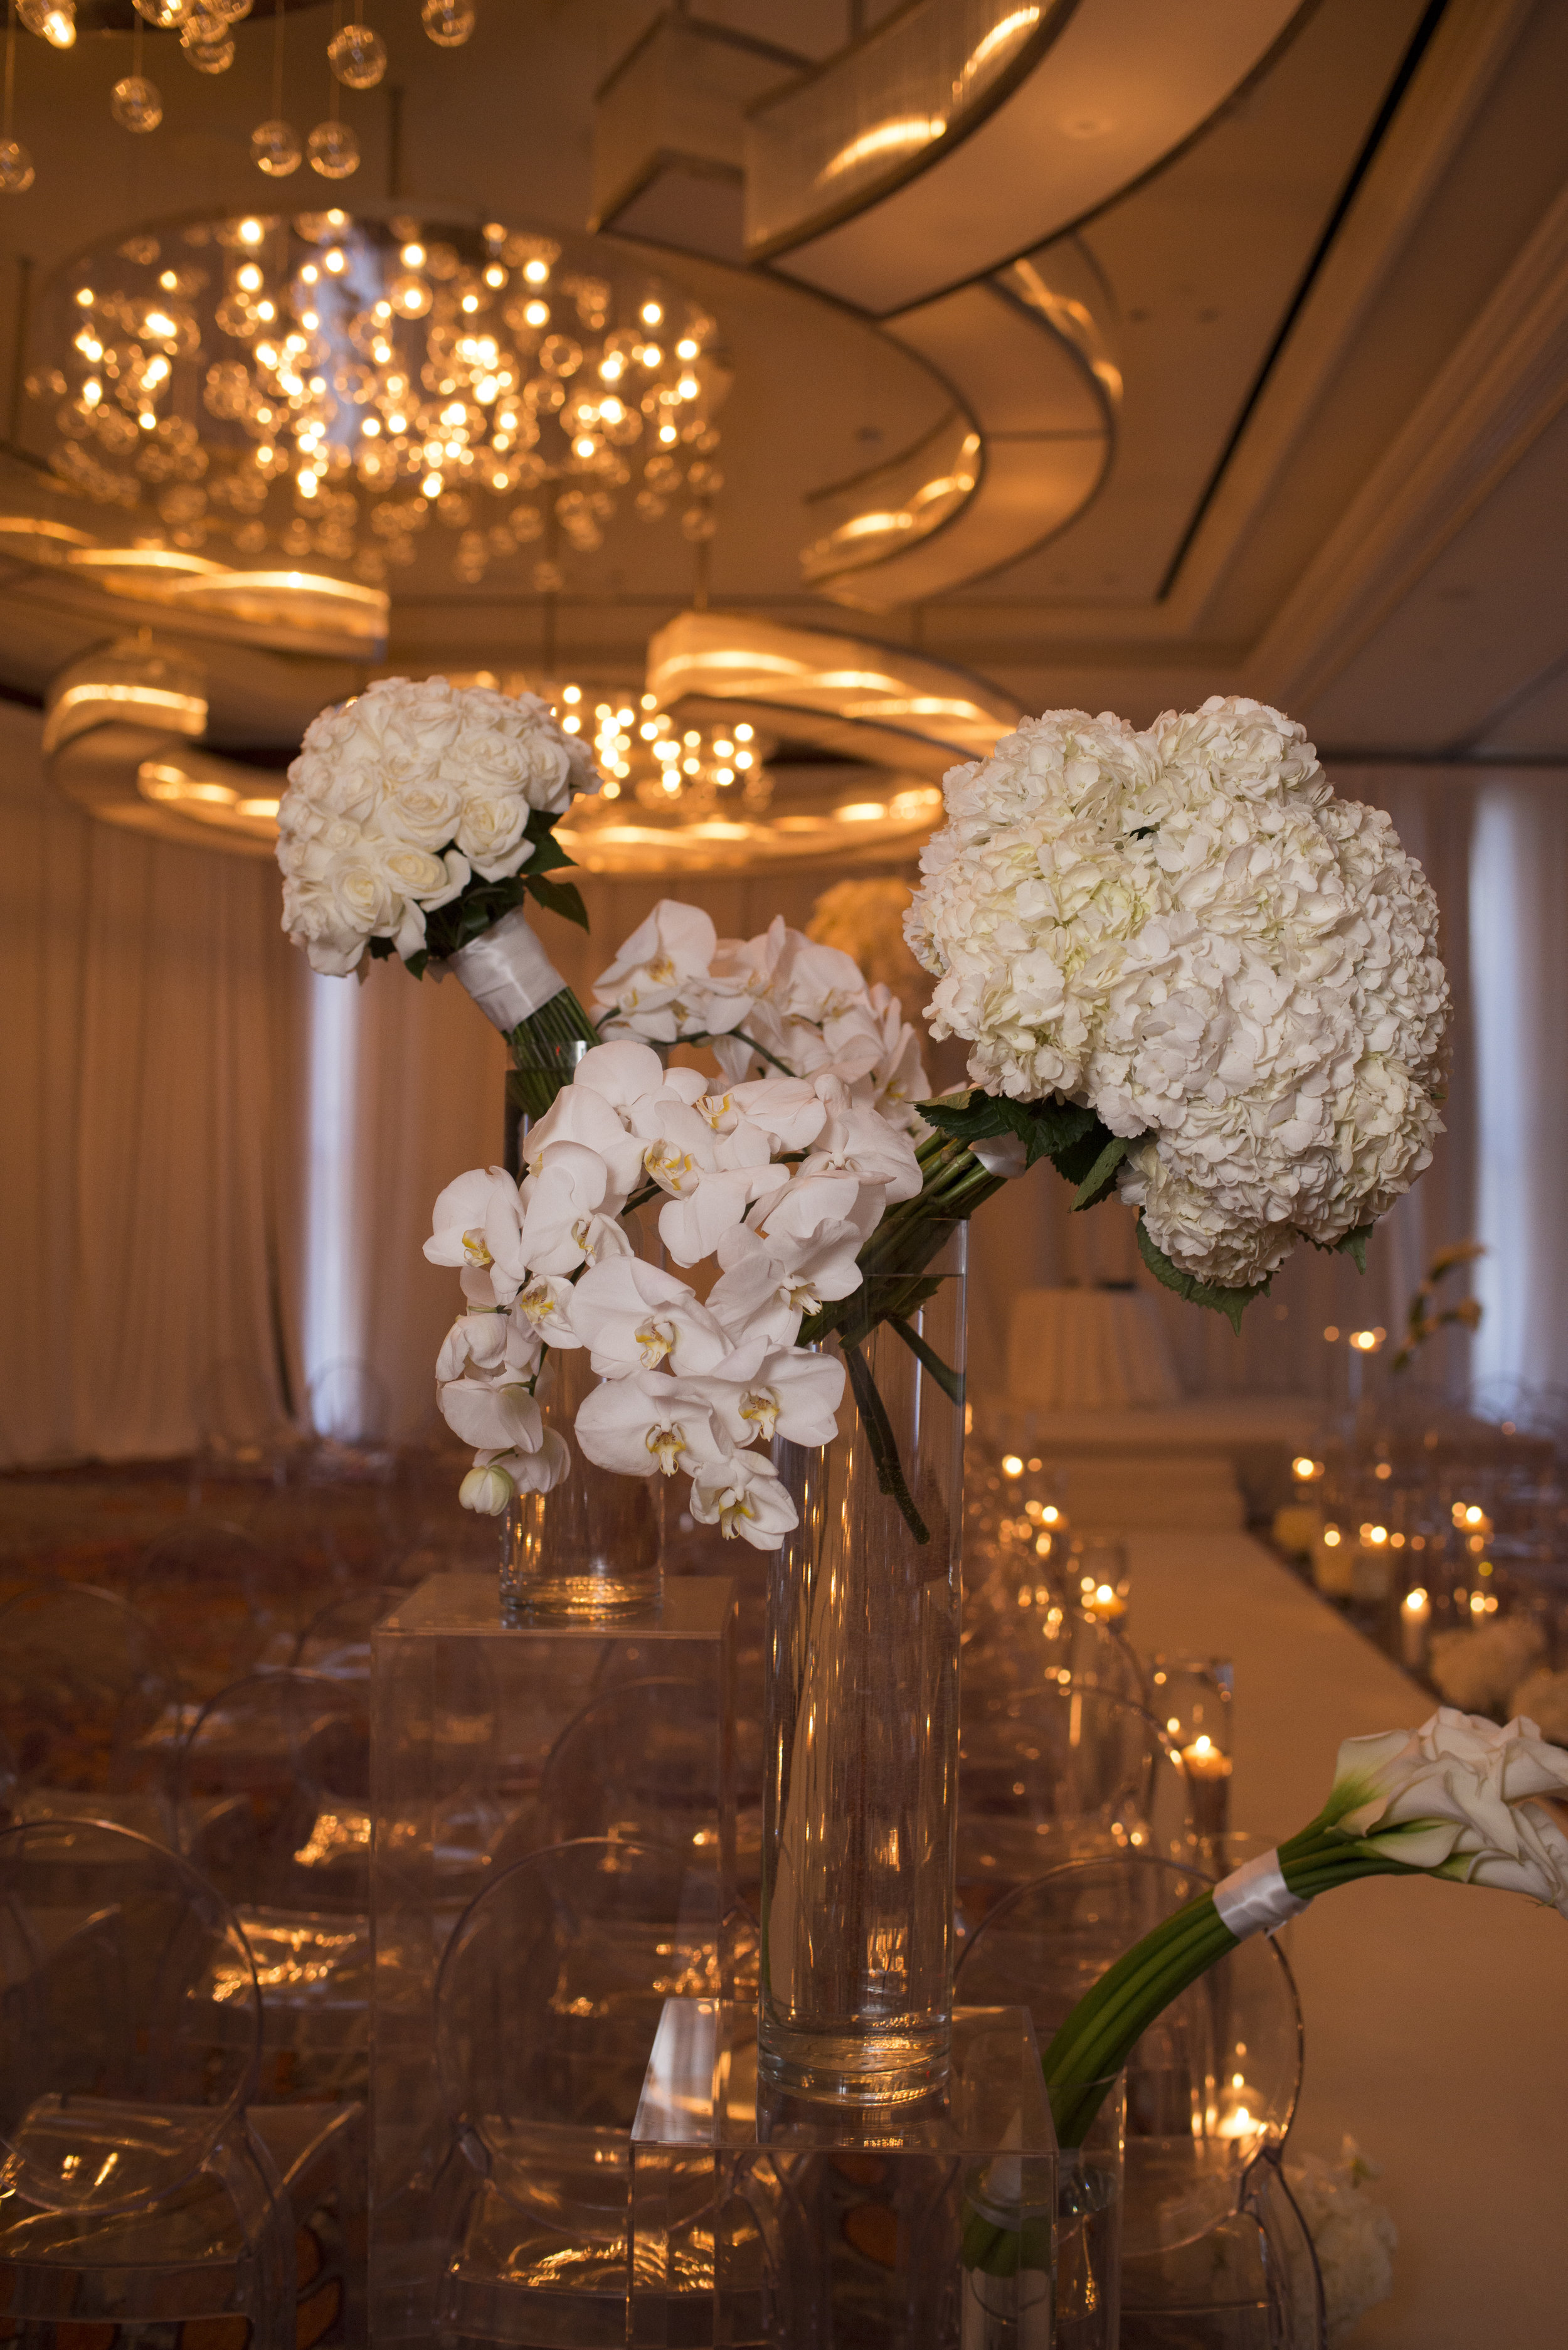 White and ivory flowers in acrylic and glass vases. WEDDING PLANNING & EVENT DESIGN • Andrea Eppolito Events ,PHOTOGRAPHY • AltF Photography ,FLORAL AND DECOR DESIGN & PRODUCTION • Destinations by Design , CATERING • Mandarin Oriental Las Vegas , COCKTAILS •  The Grand Bevy , WEDDING GOWN •  Galia Lahav ,SHOES •  Jimmy Choo